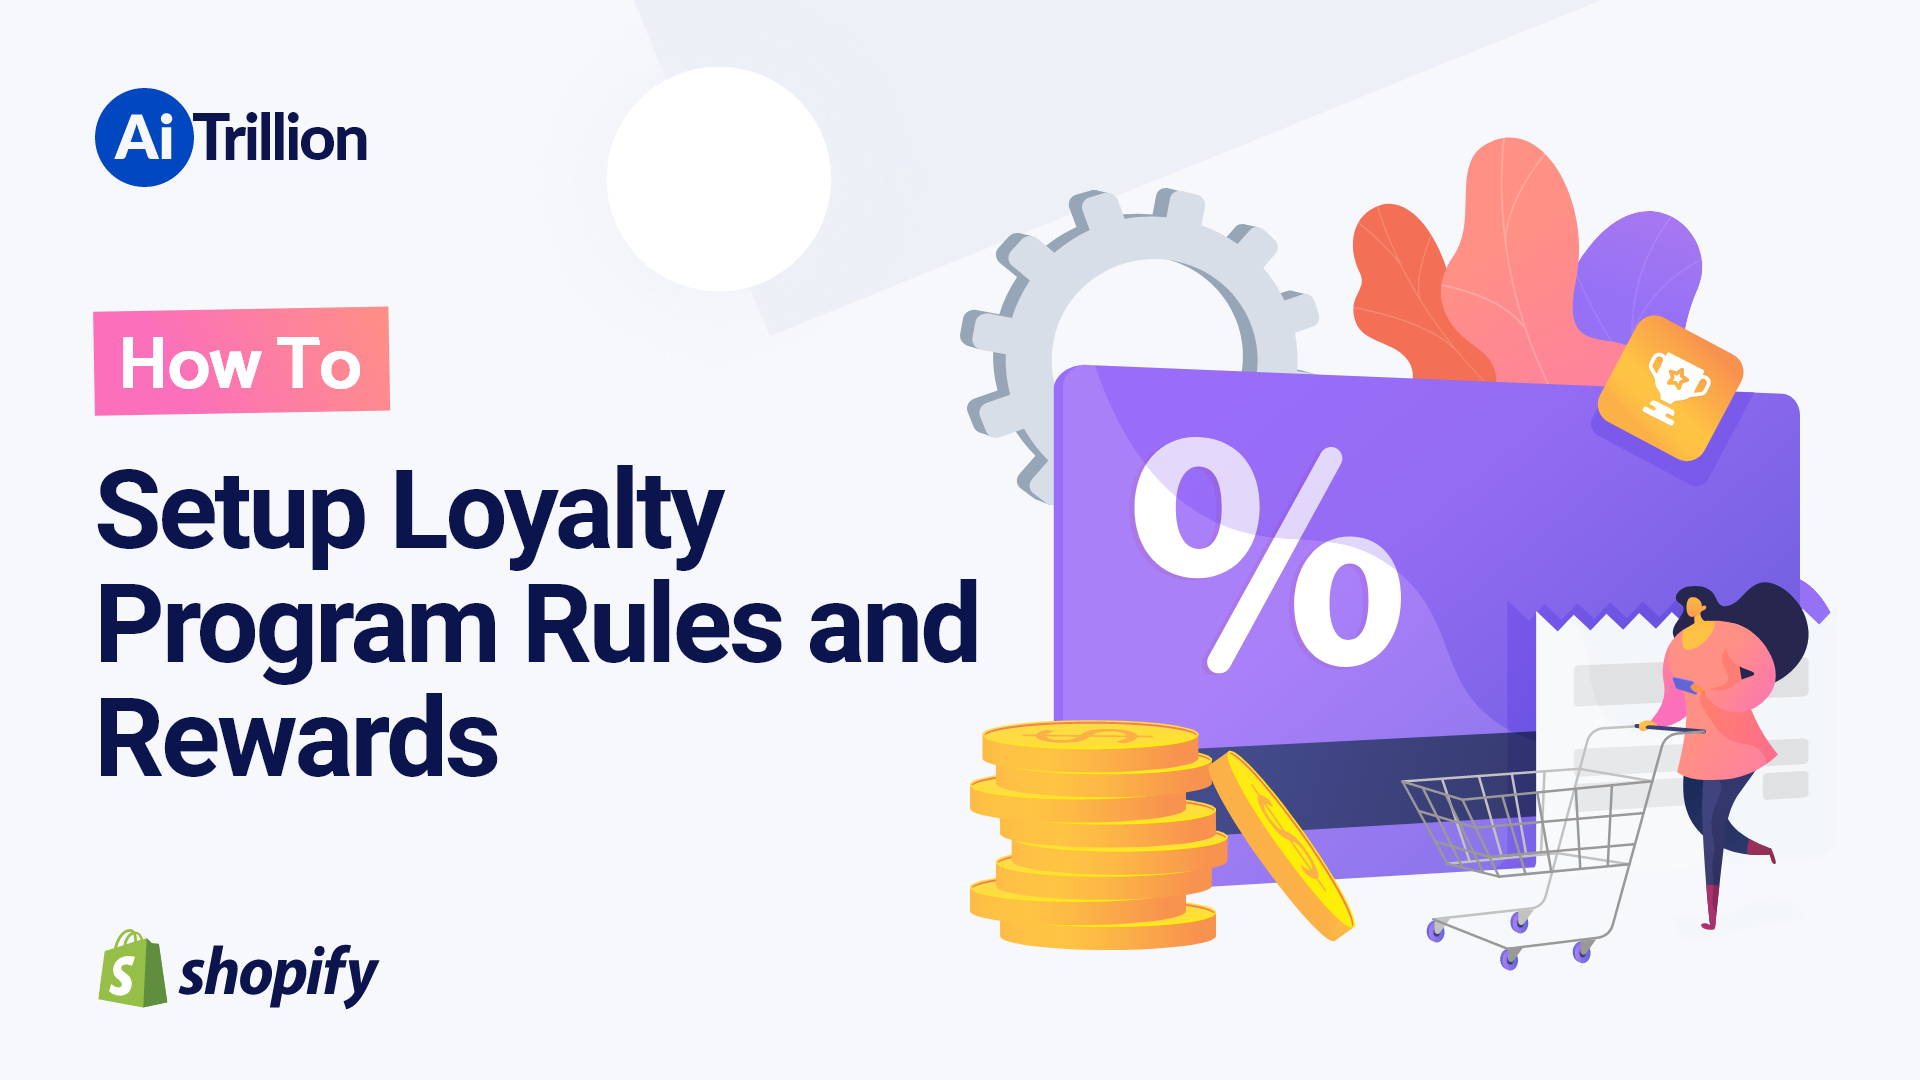 How To Setup Loyalty Program Rules and Rewards